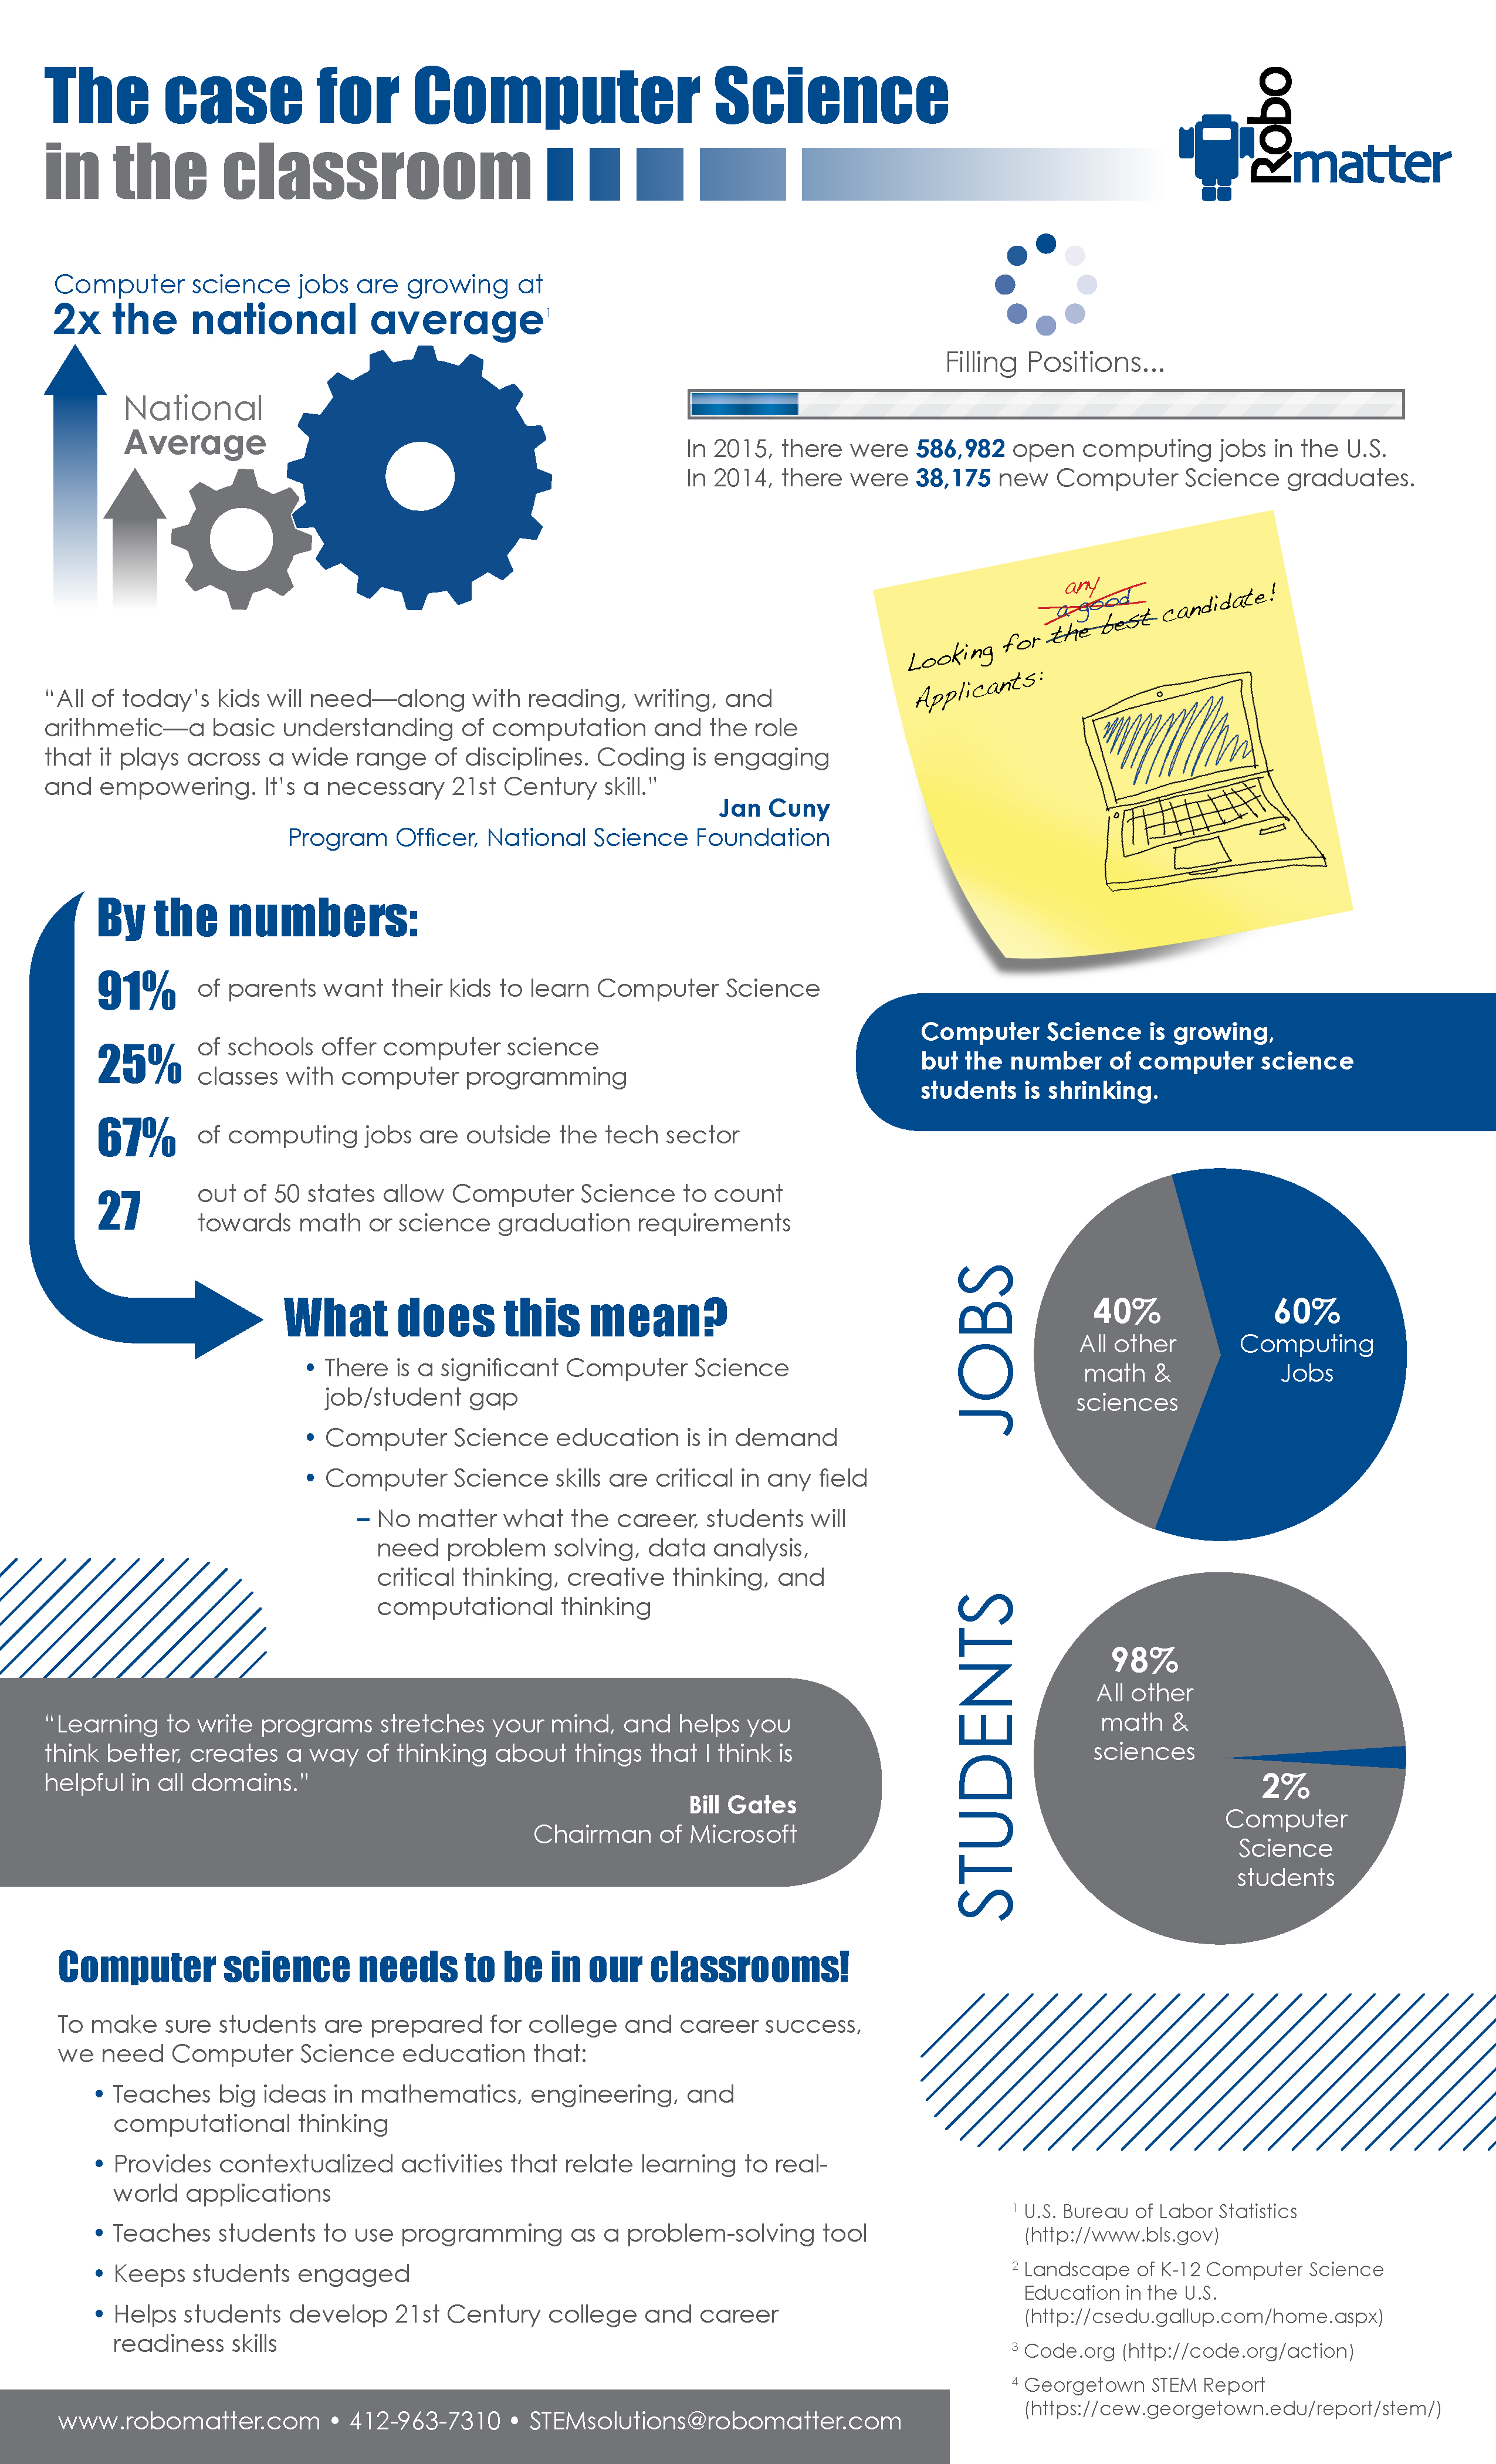 Computer_science_education_week_infographic_2_(blue)_original